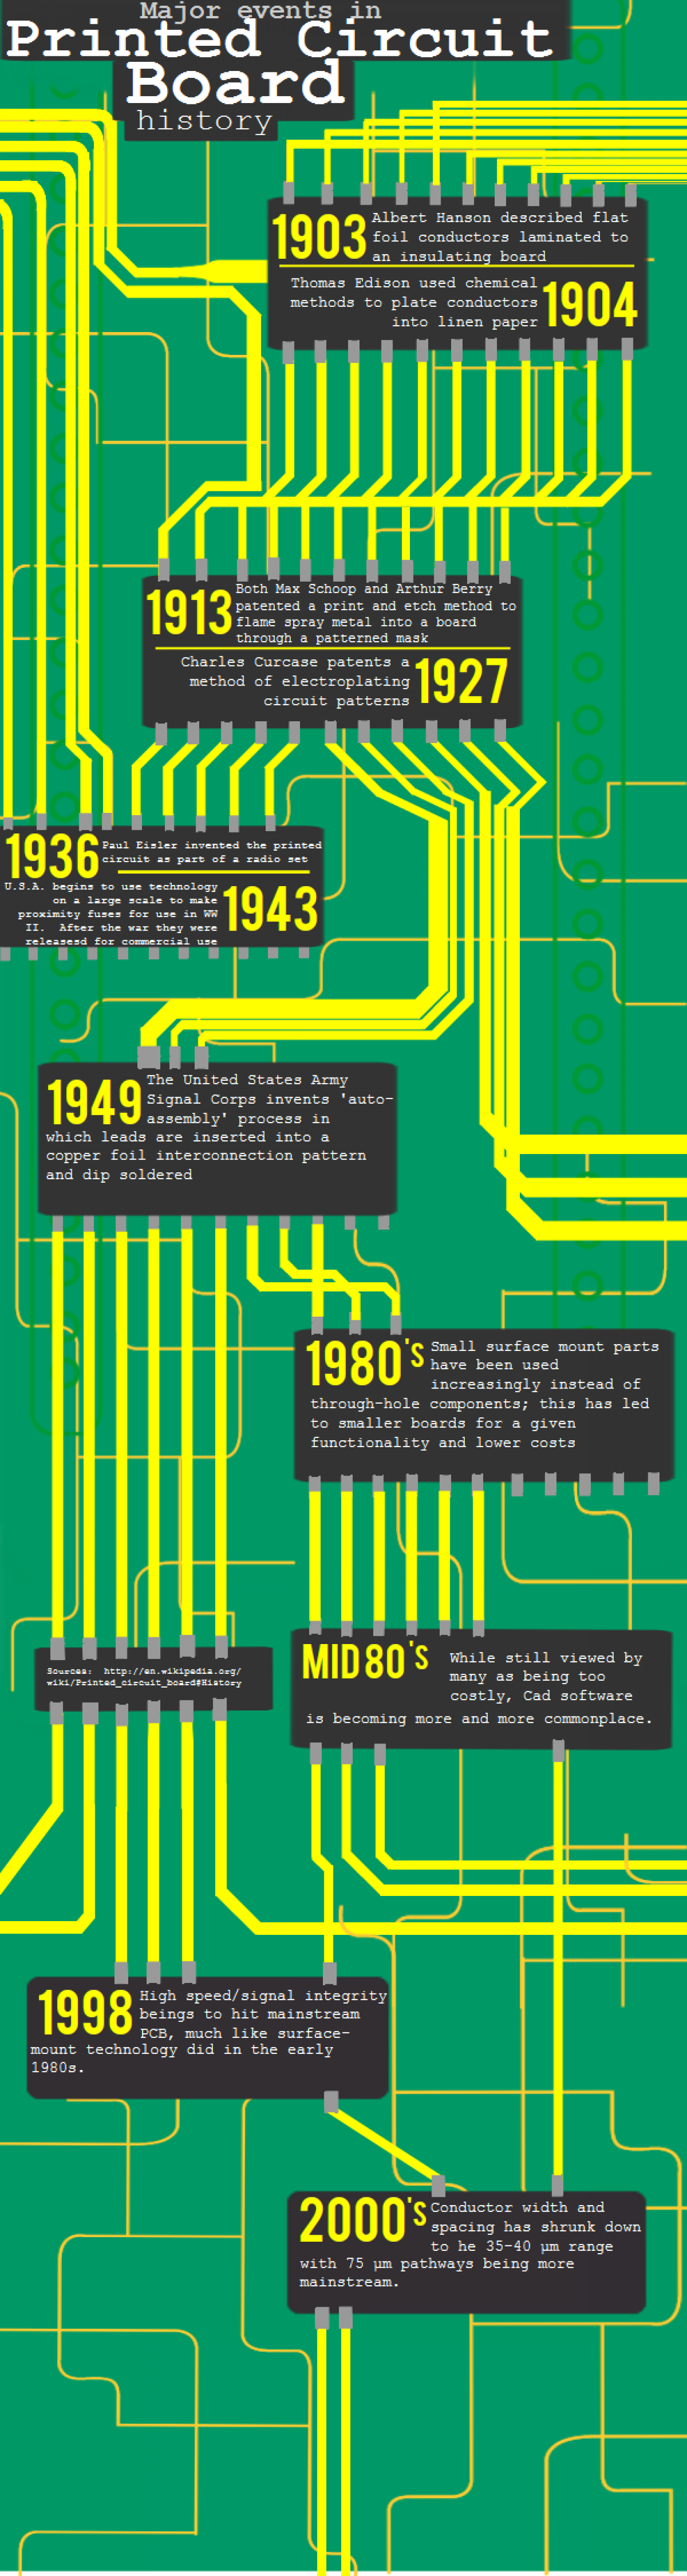 Major Events in Printed Circuit Board History Infographic